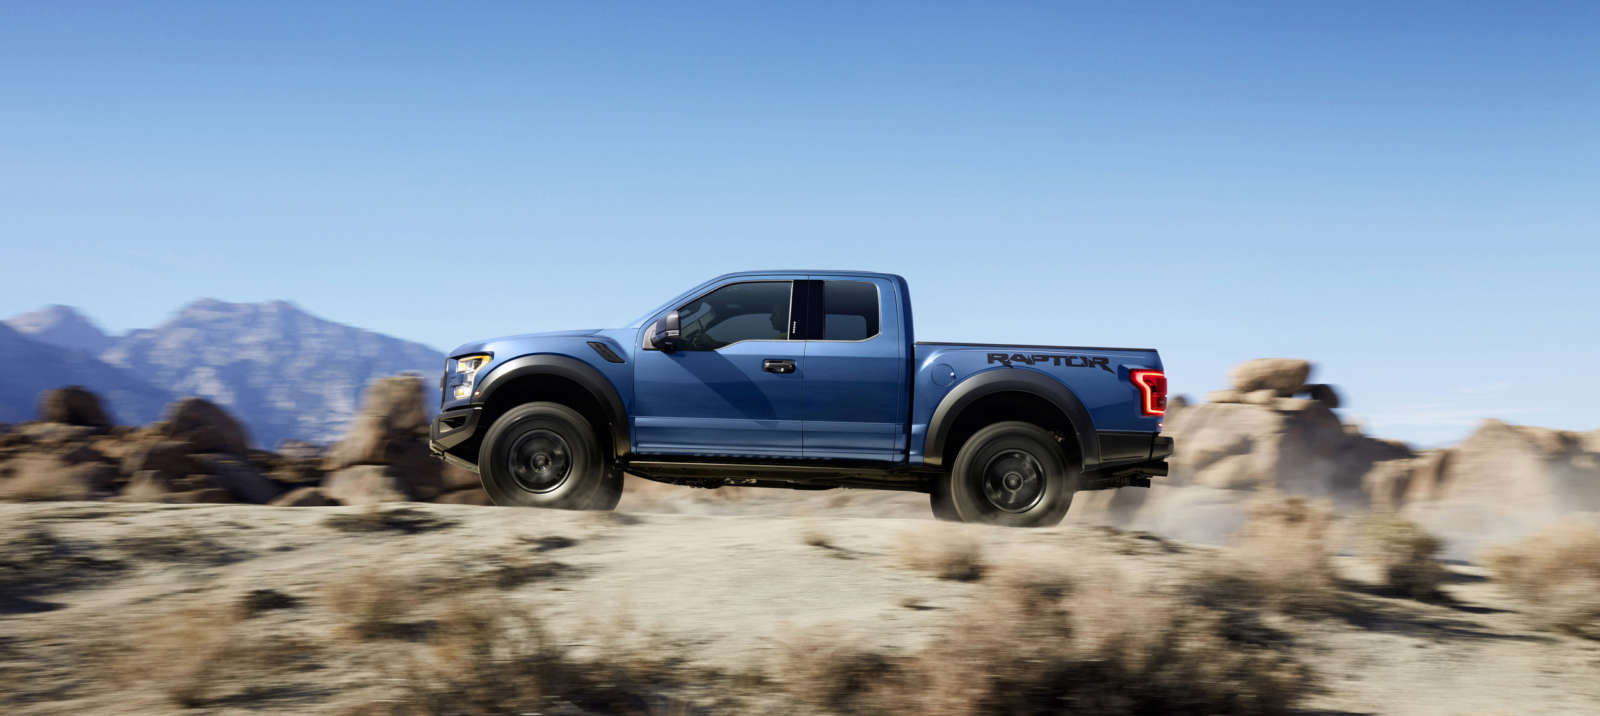 2017 ford f150 raptor 9. Black Bedroom Furniture Sets. Home Design Ideas